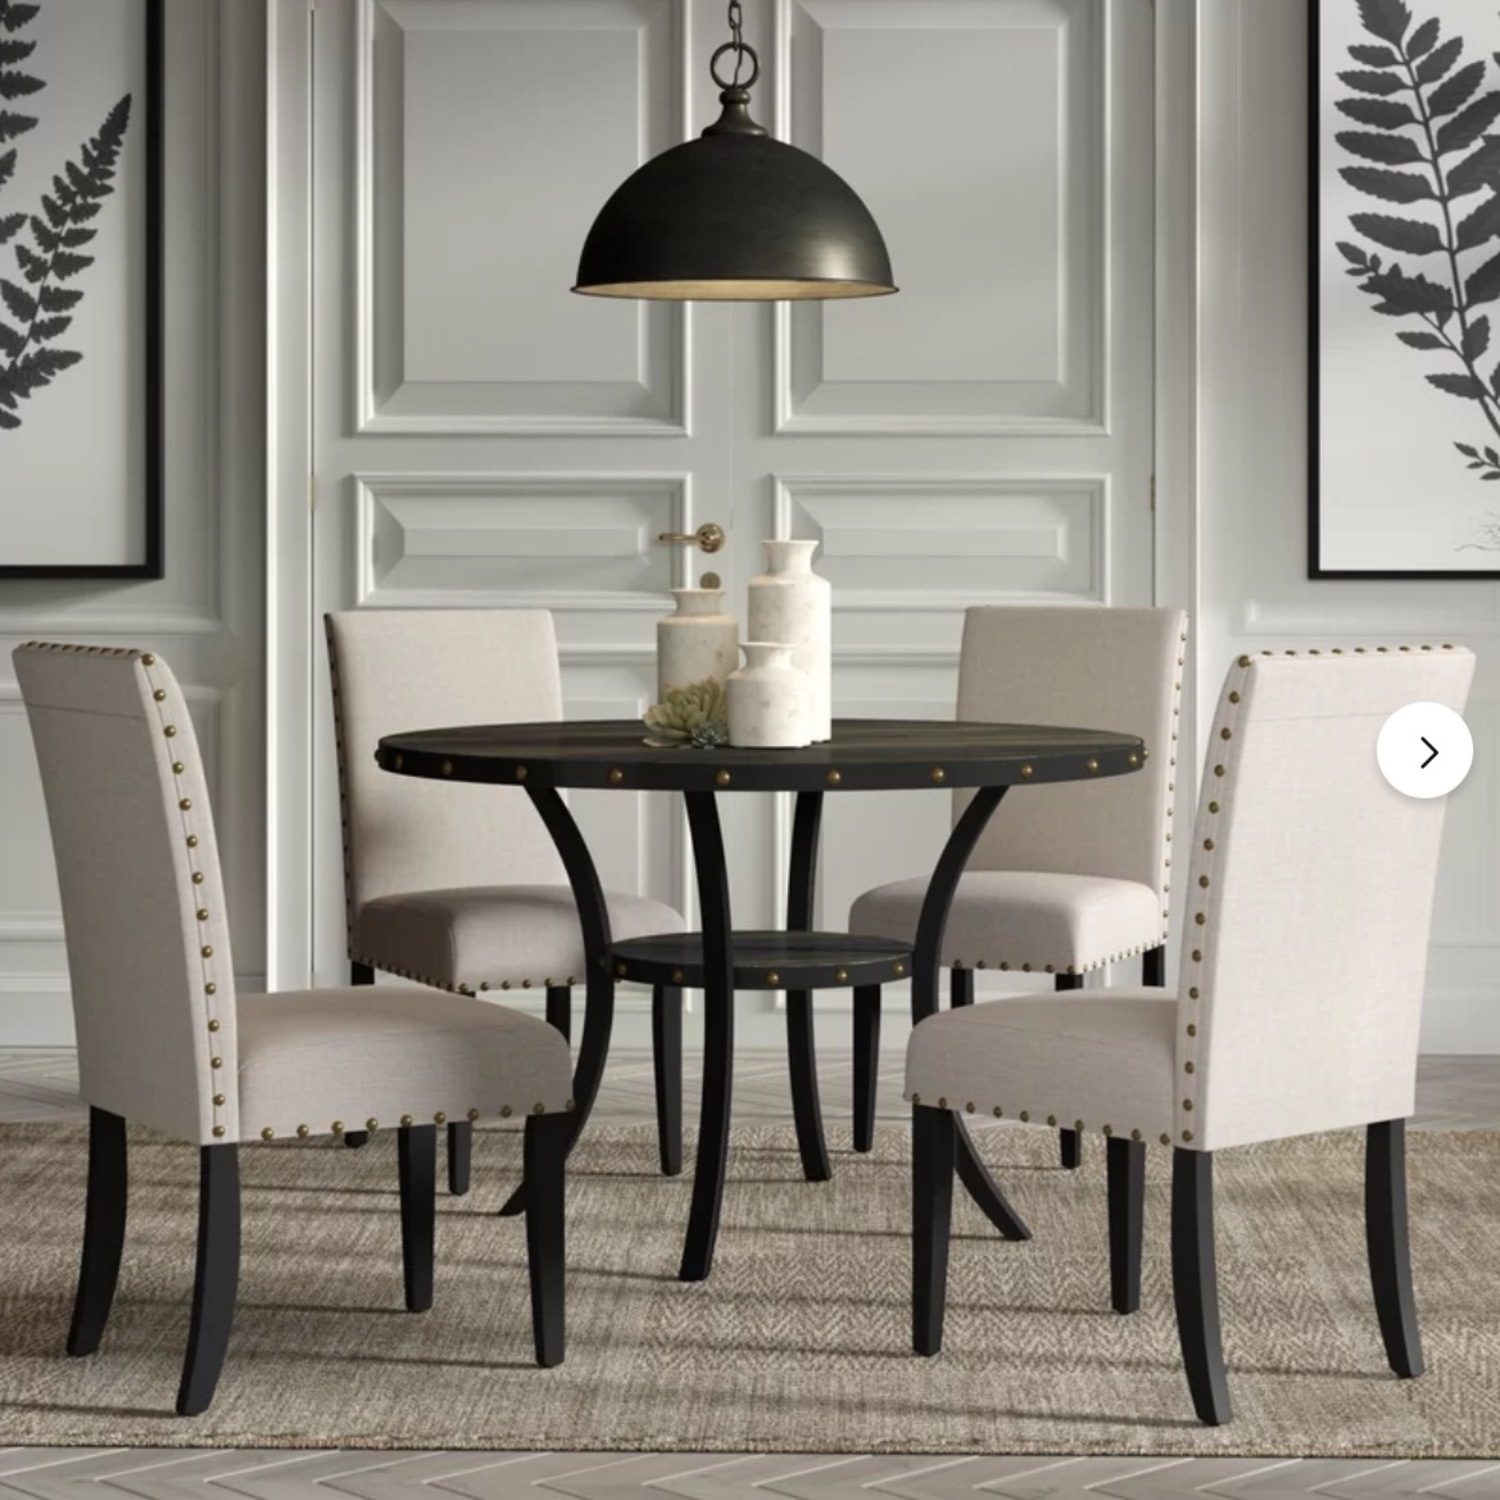 Wayfair Set of Gracie Oaks Upholstered Dining Chairs - image-1